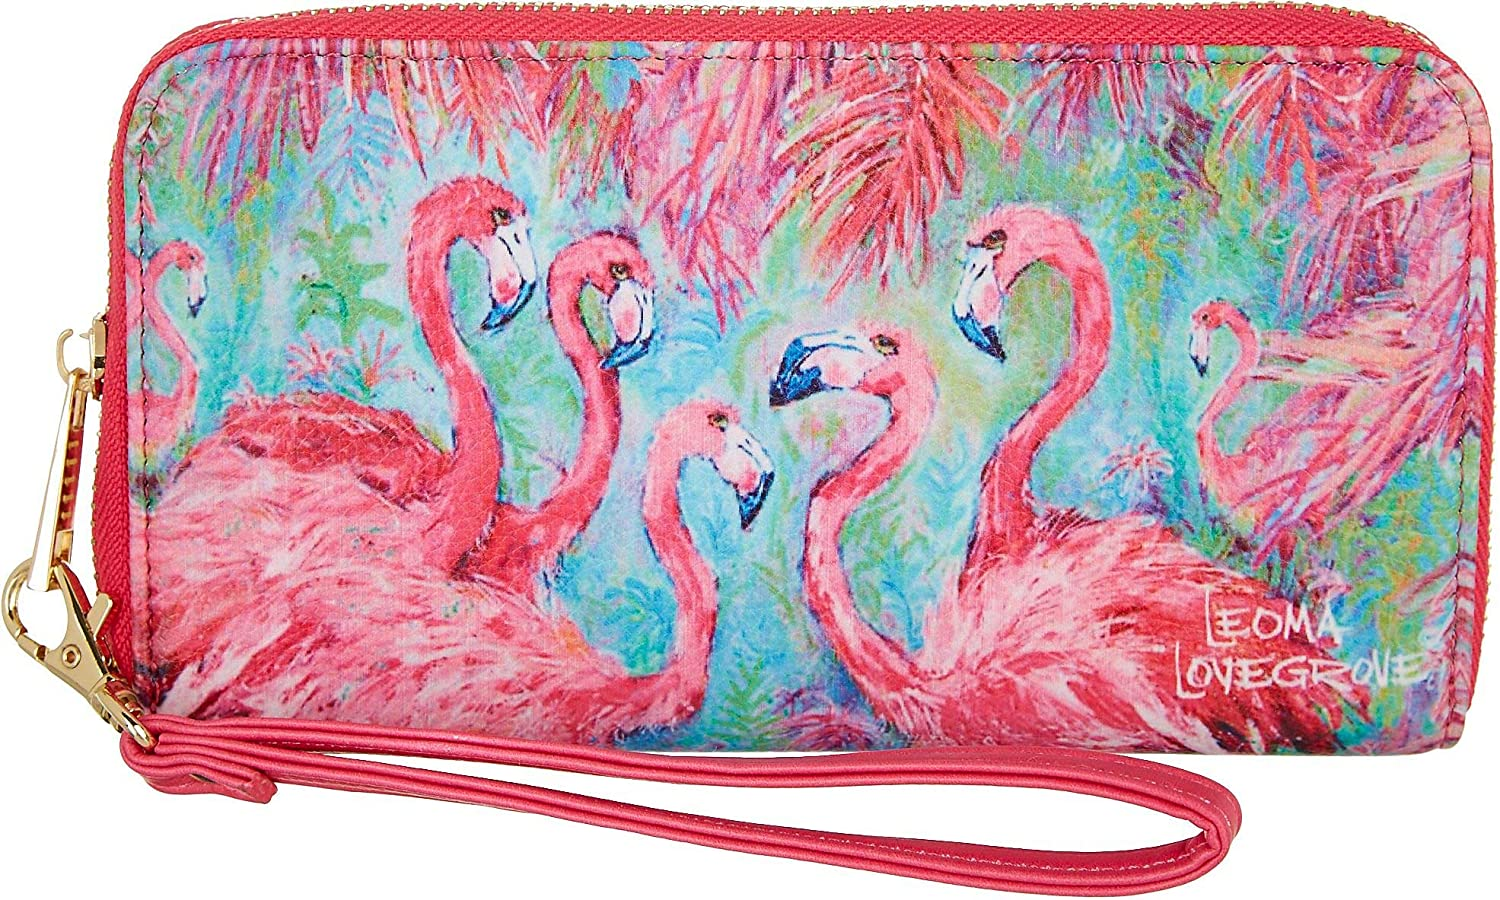 Leoma Seasonal Wrap Introduction Lovegrove Pink Power Super Special SALE held Size Wallet One multi